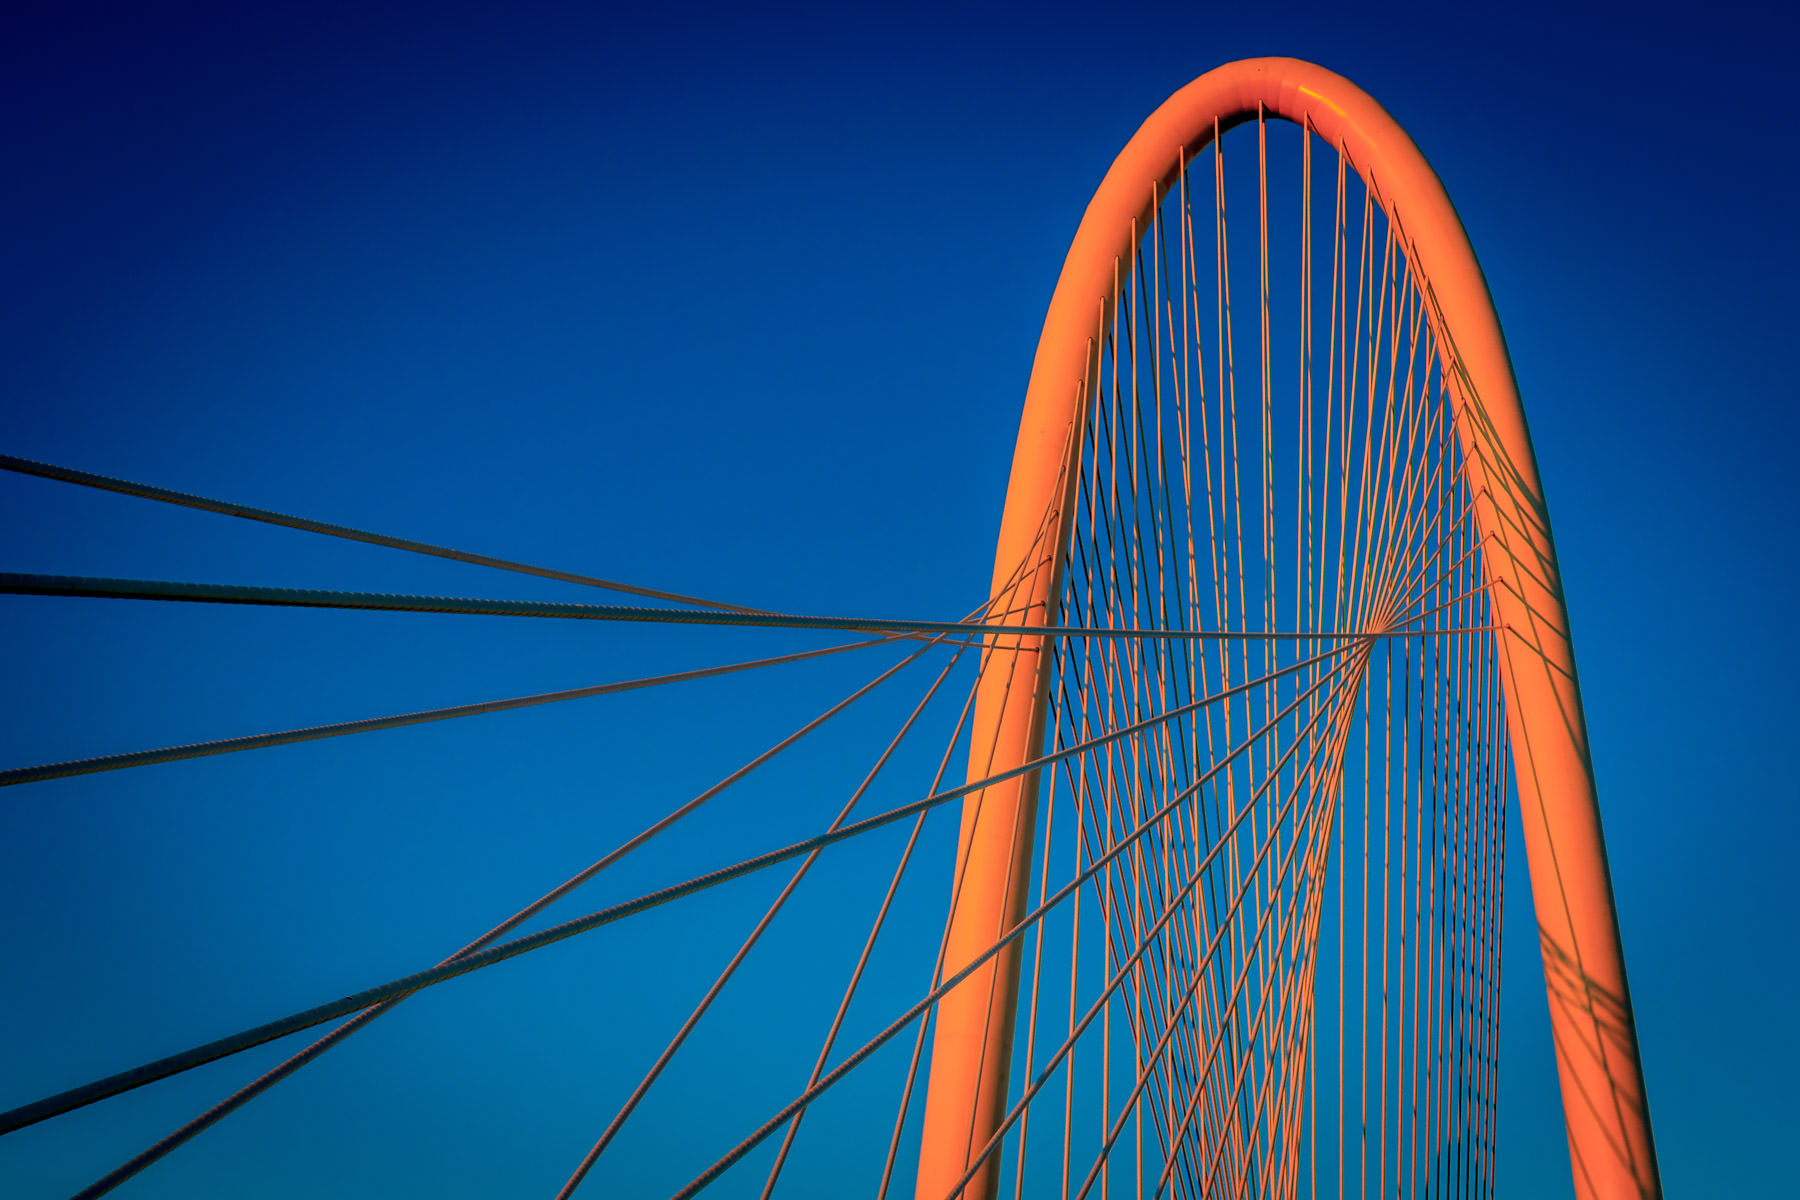 The first light of dawn casts an orange glow over Dallas' Margaret Hunt Hill Bridge, designed by Santiago Calatrava and dedicated in 2012.